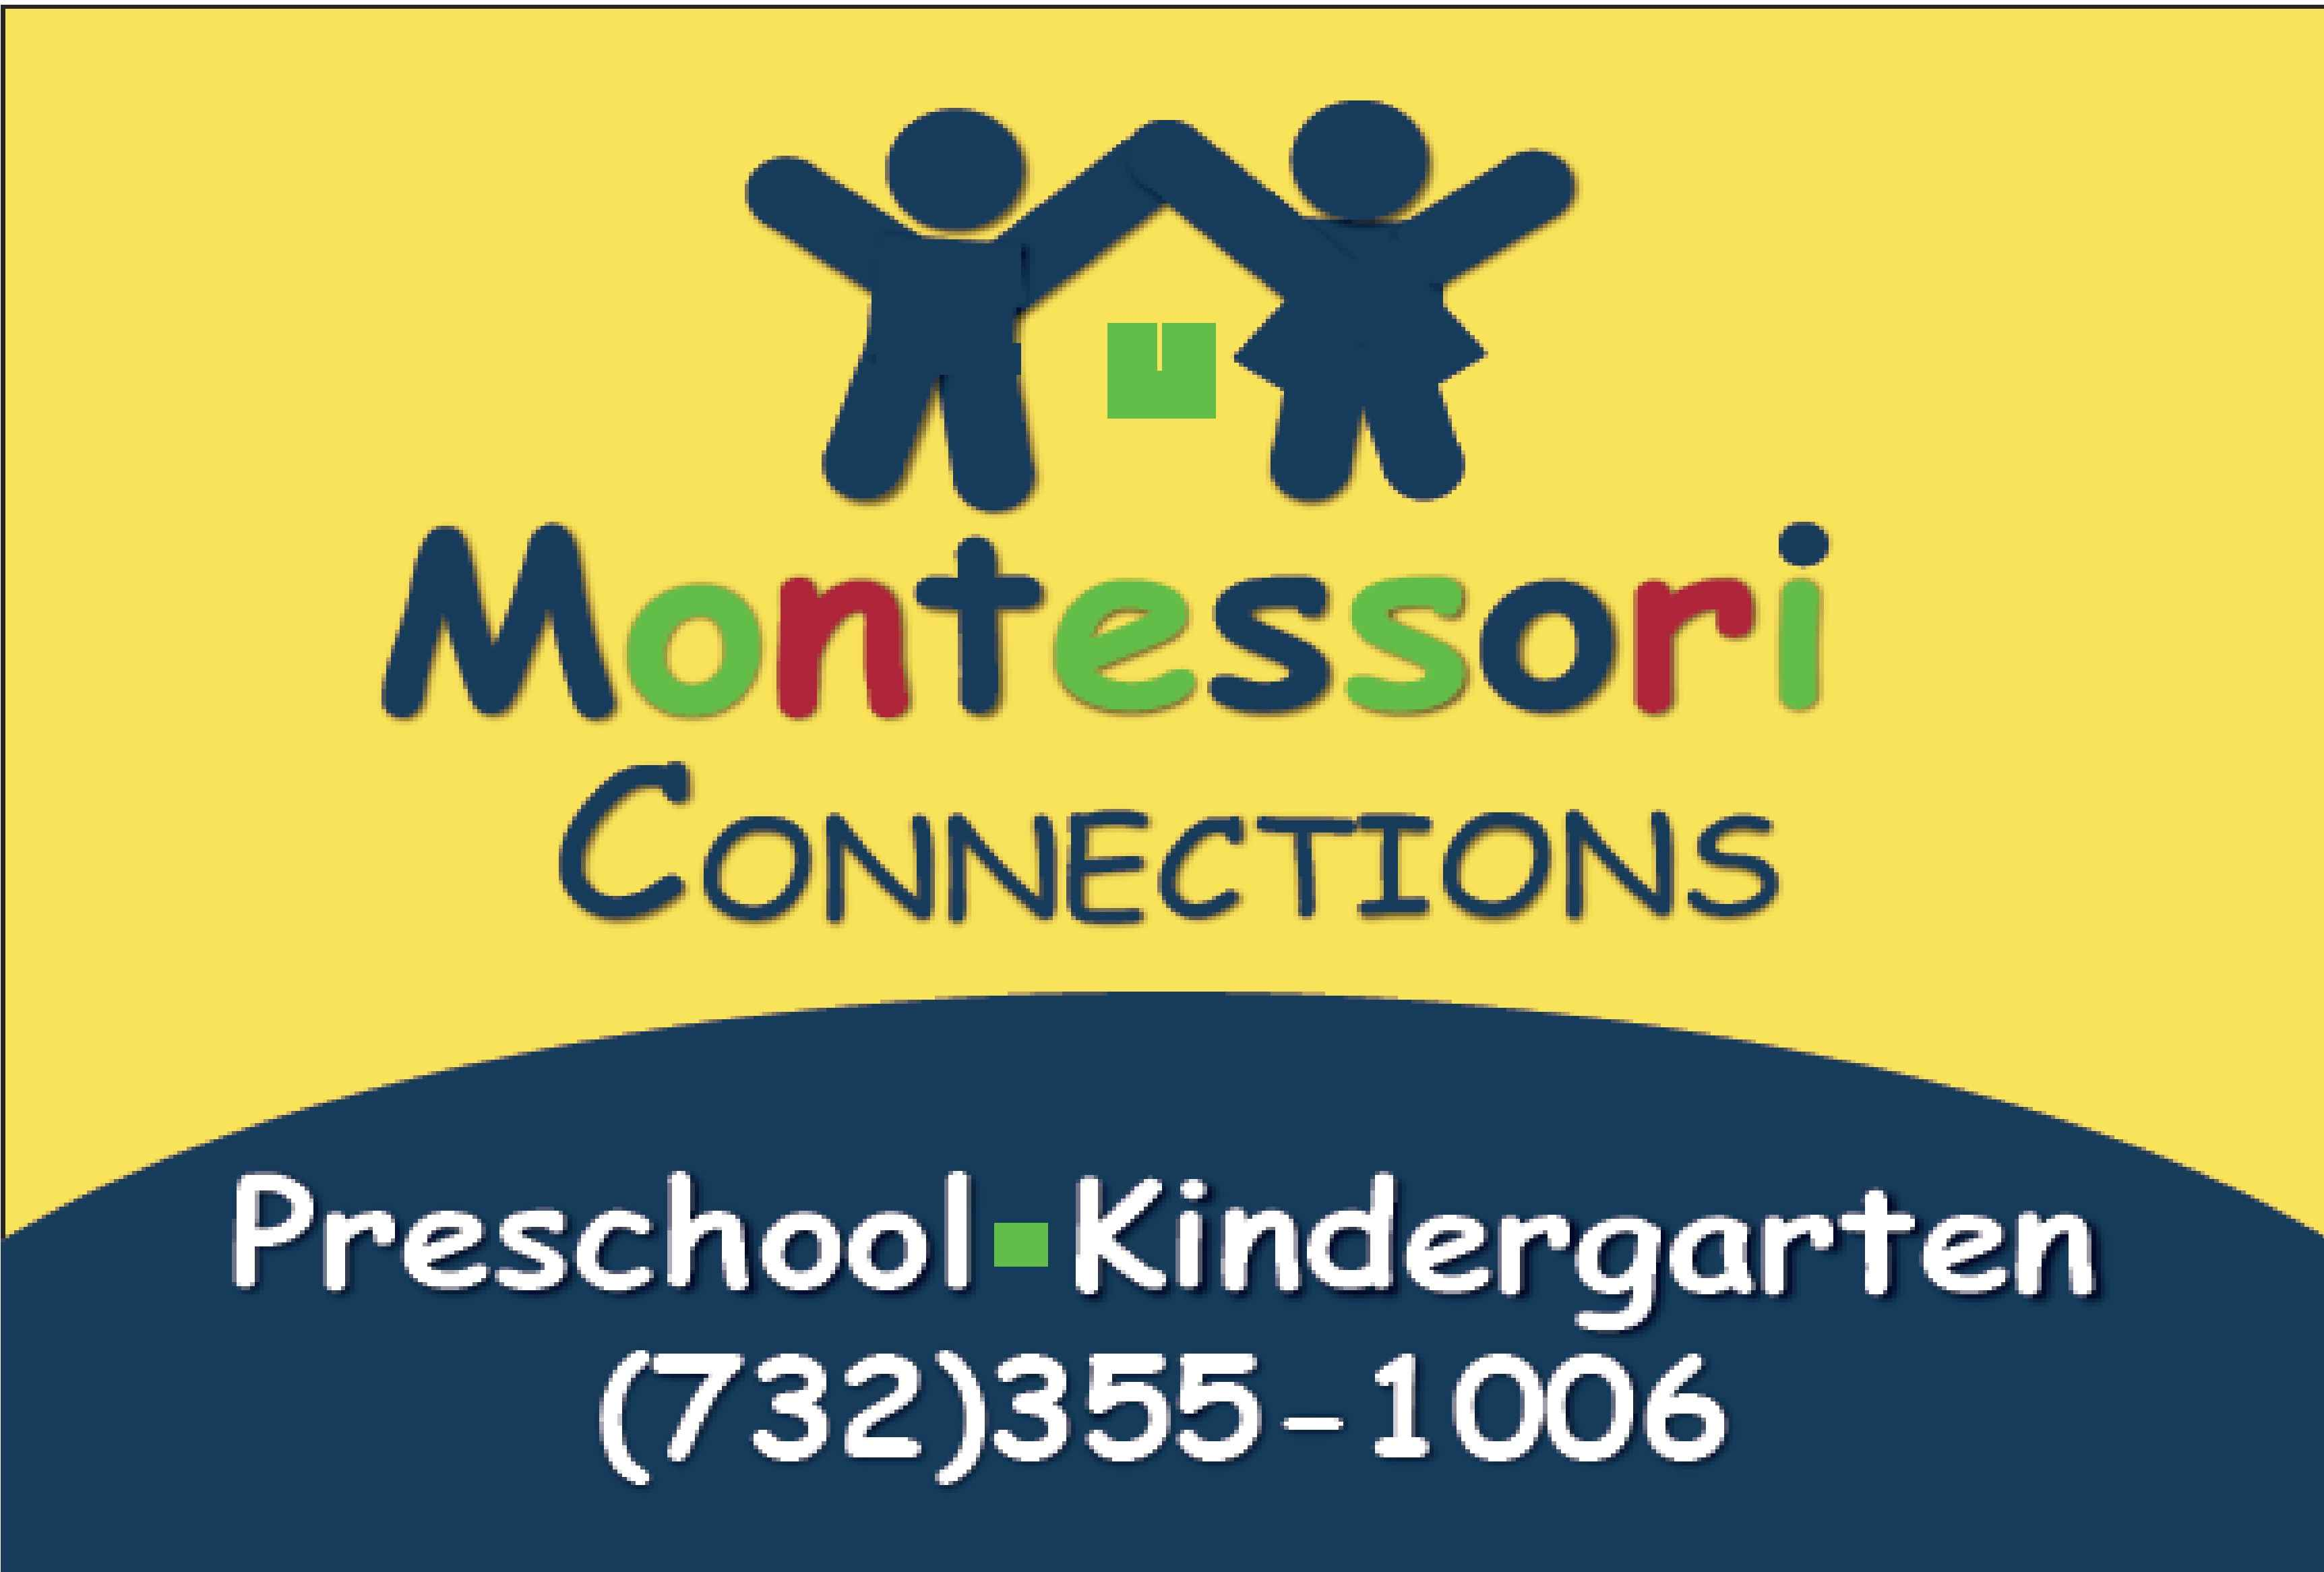 Montessori Connections